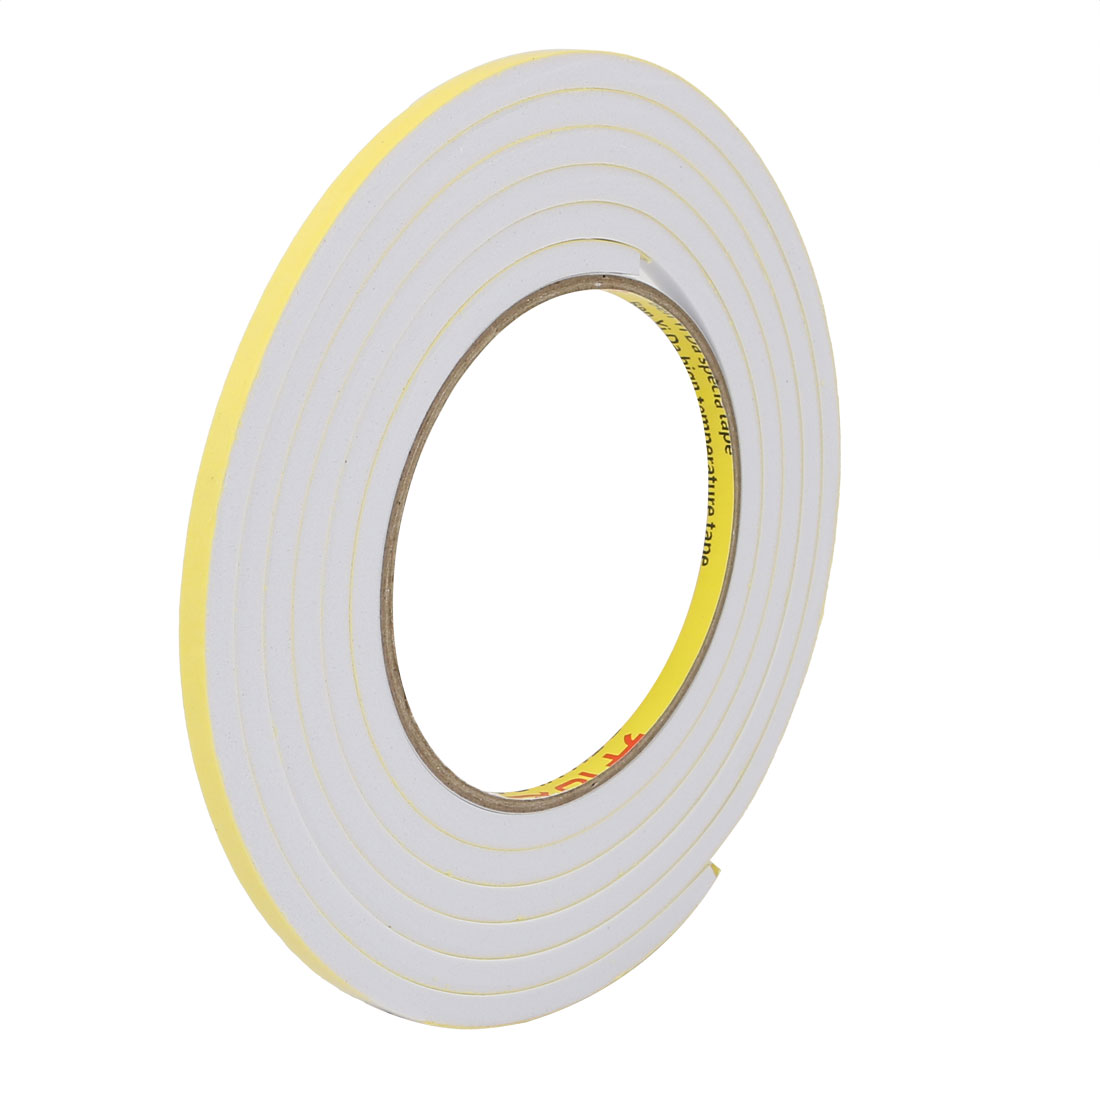 5mm Wide 5mm Thick Single Sided Shockproof EVA Sponge Tape White 2 Meters Long